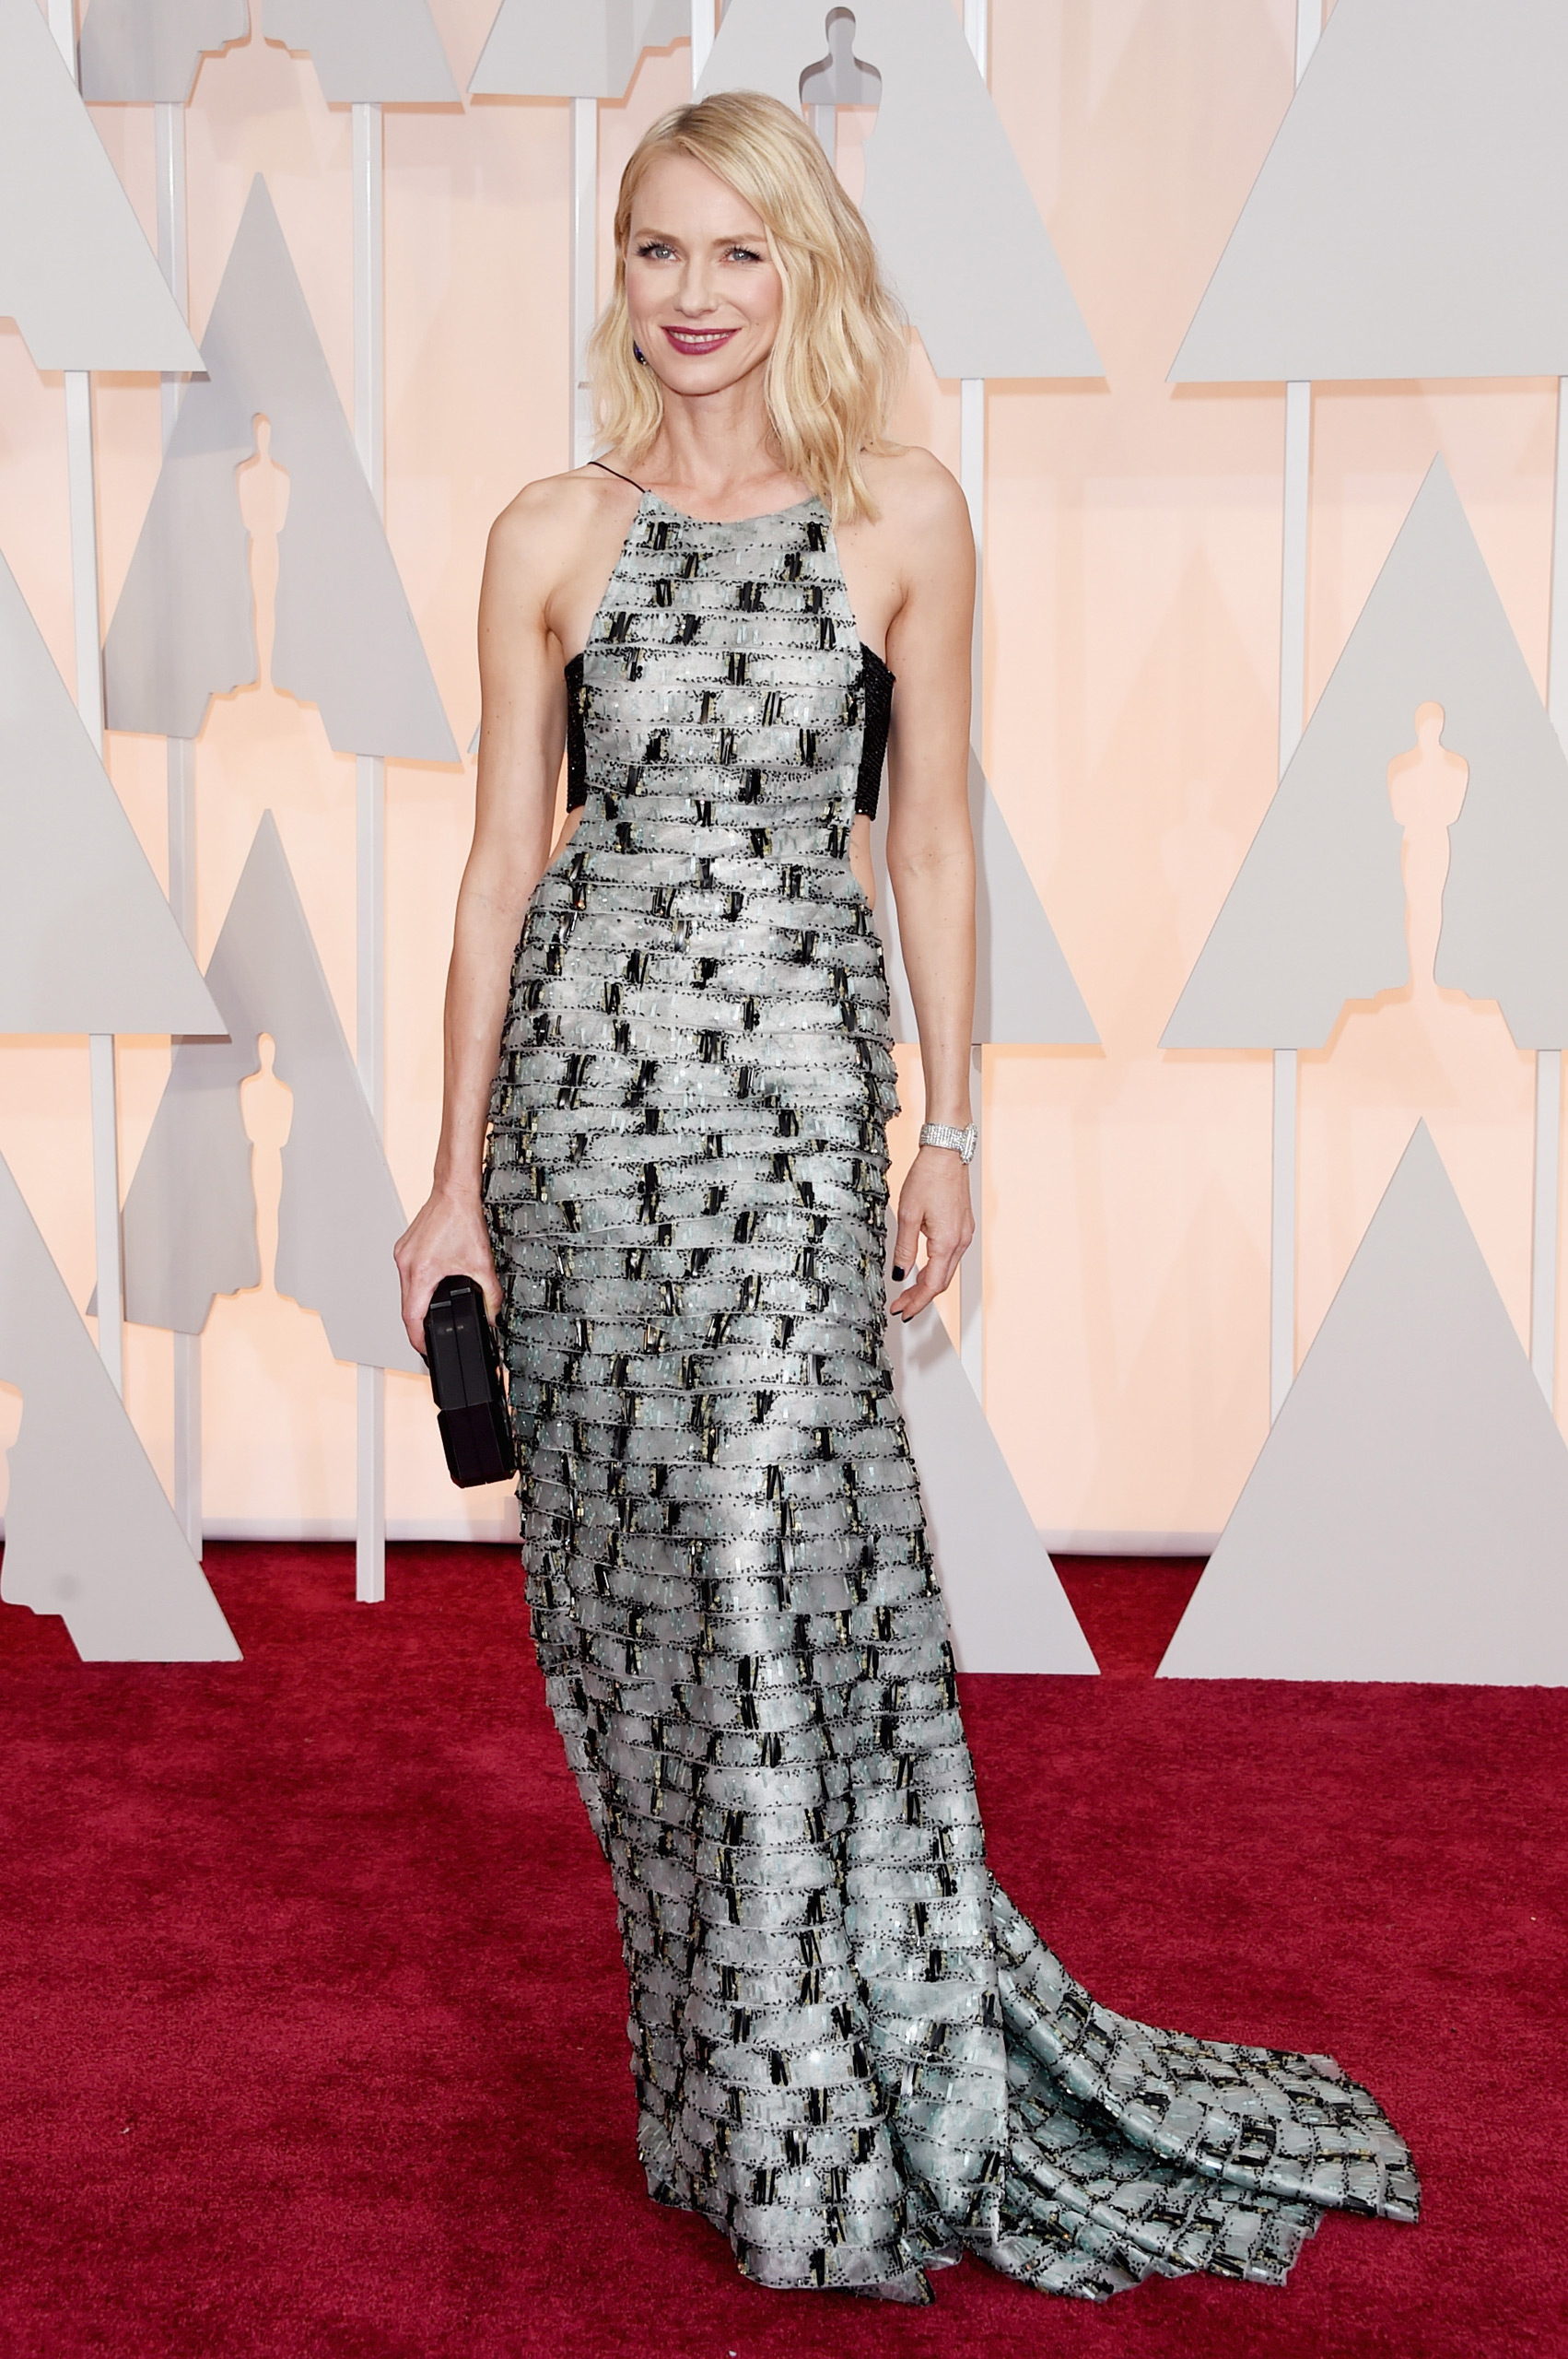 Naomi Watts attends the 87th Annual Academy Awards on Feb. 22, 2015 in Hollywood, Calif.